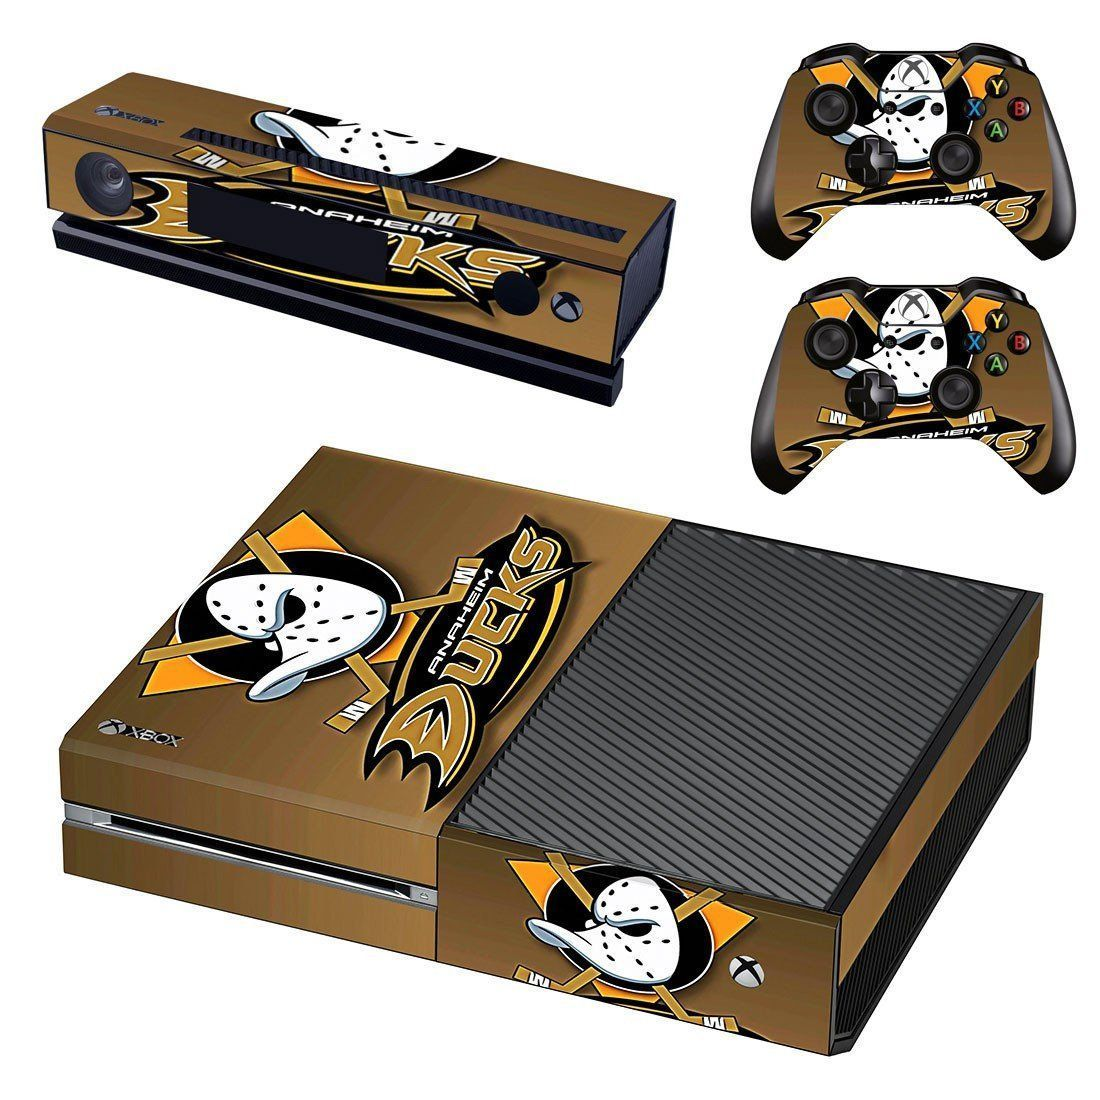 Anaheim Ducks Ice Hockey Team Skin Decal For Xbox One Console And Controllers Xbox One Console Xbox One Xbox One Skin